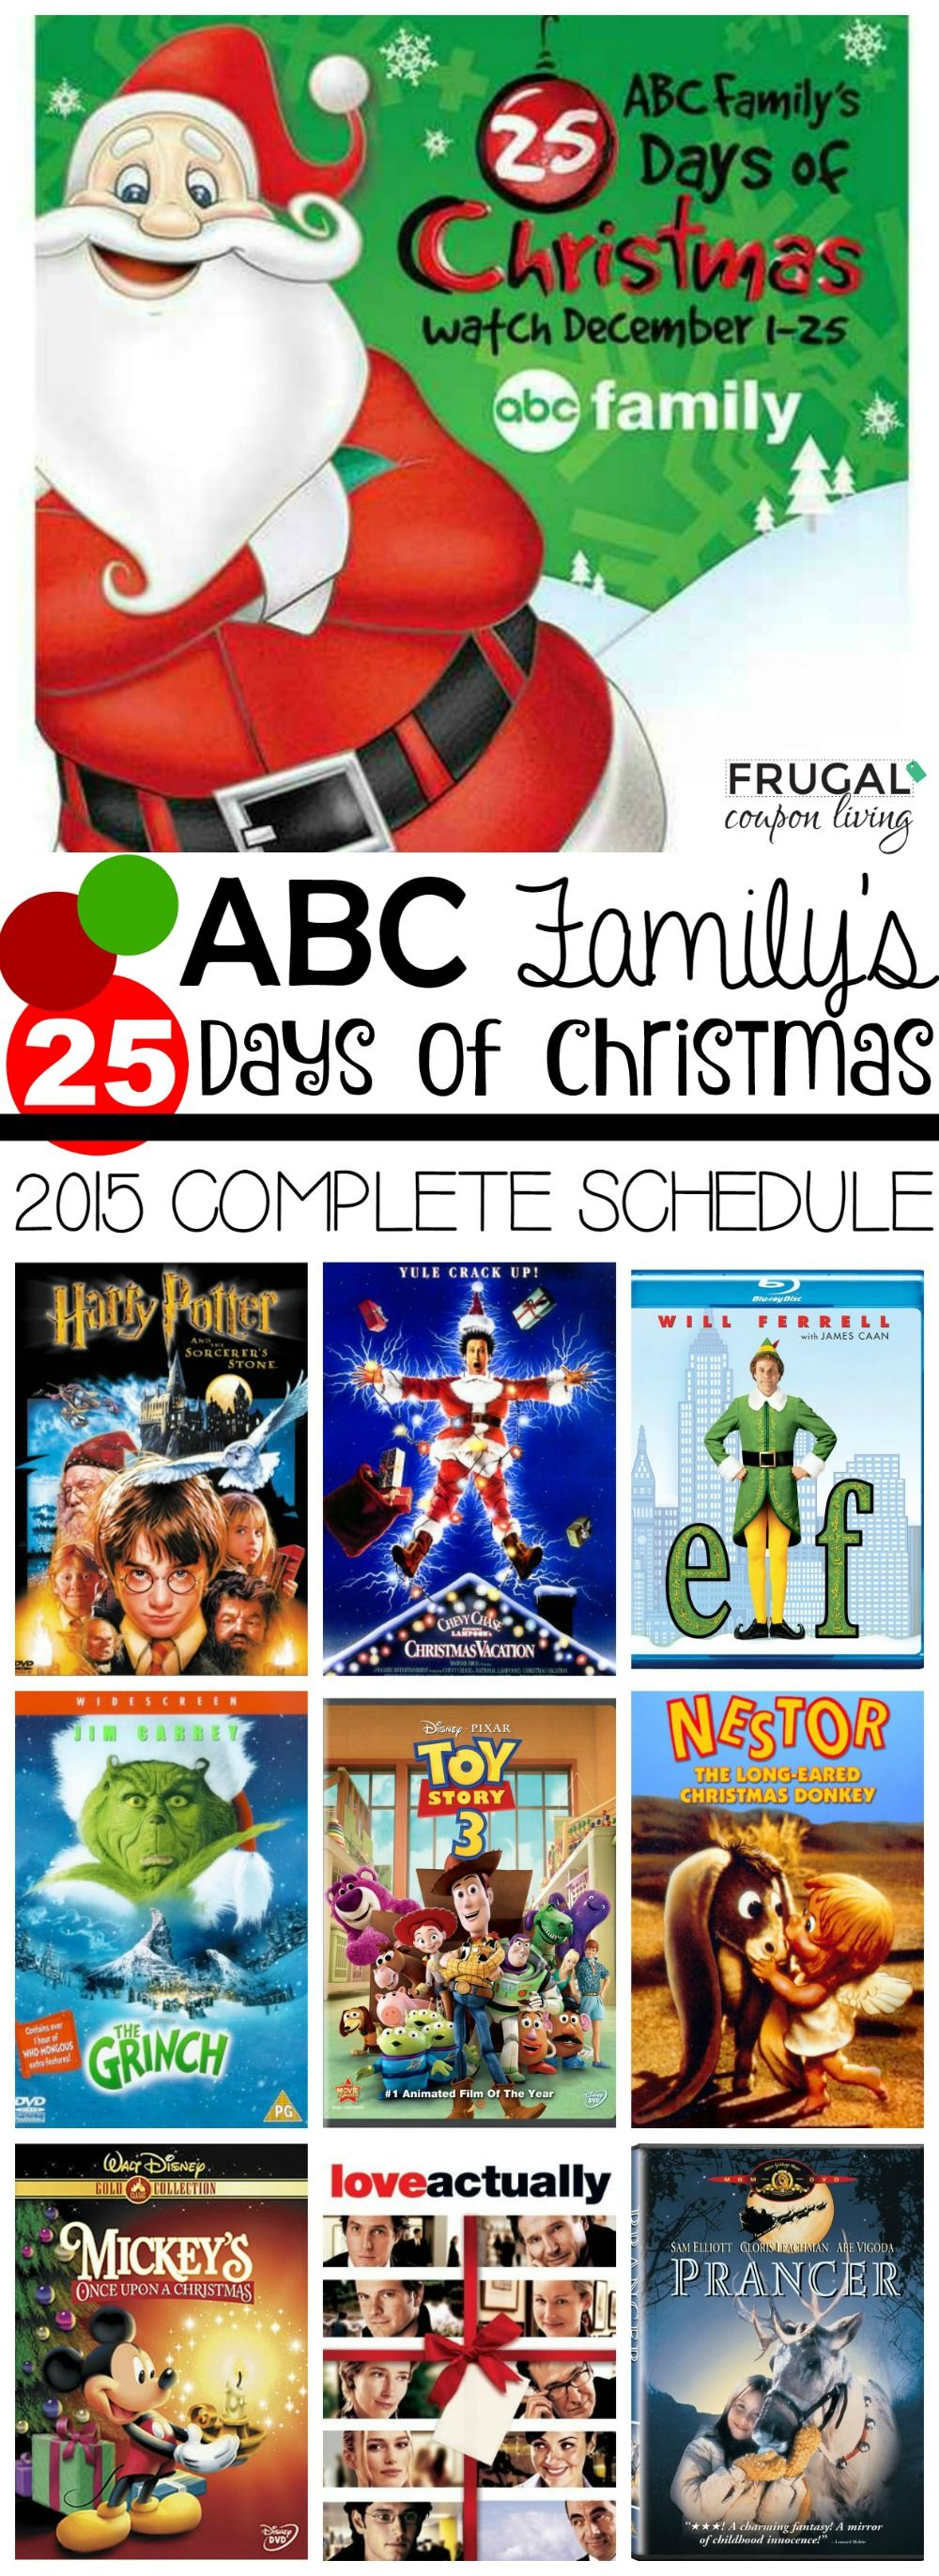 Abc Family 25 Days Of Christmas 2015 Schedule 25 Days Of